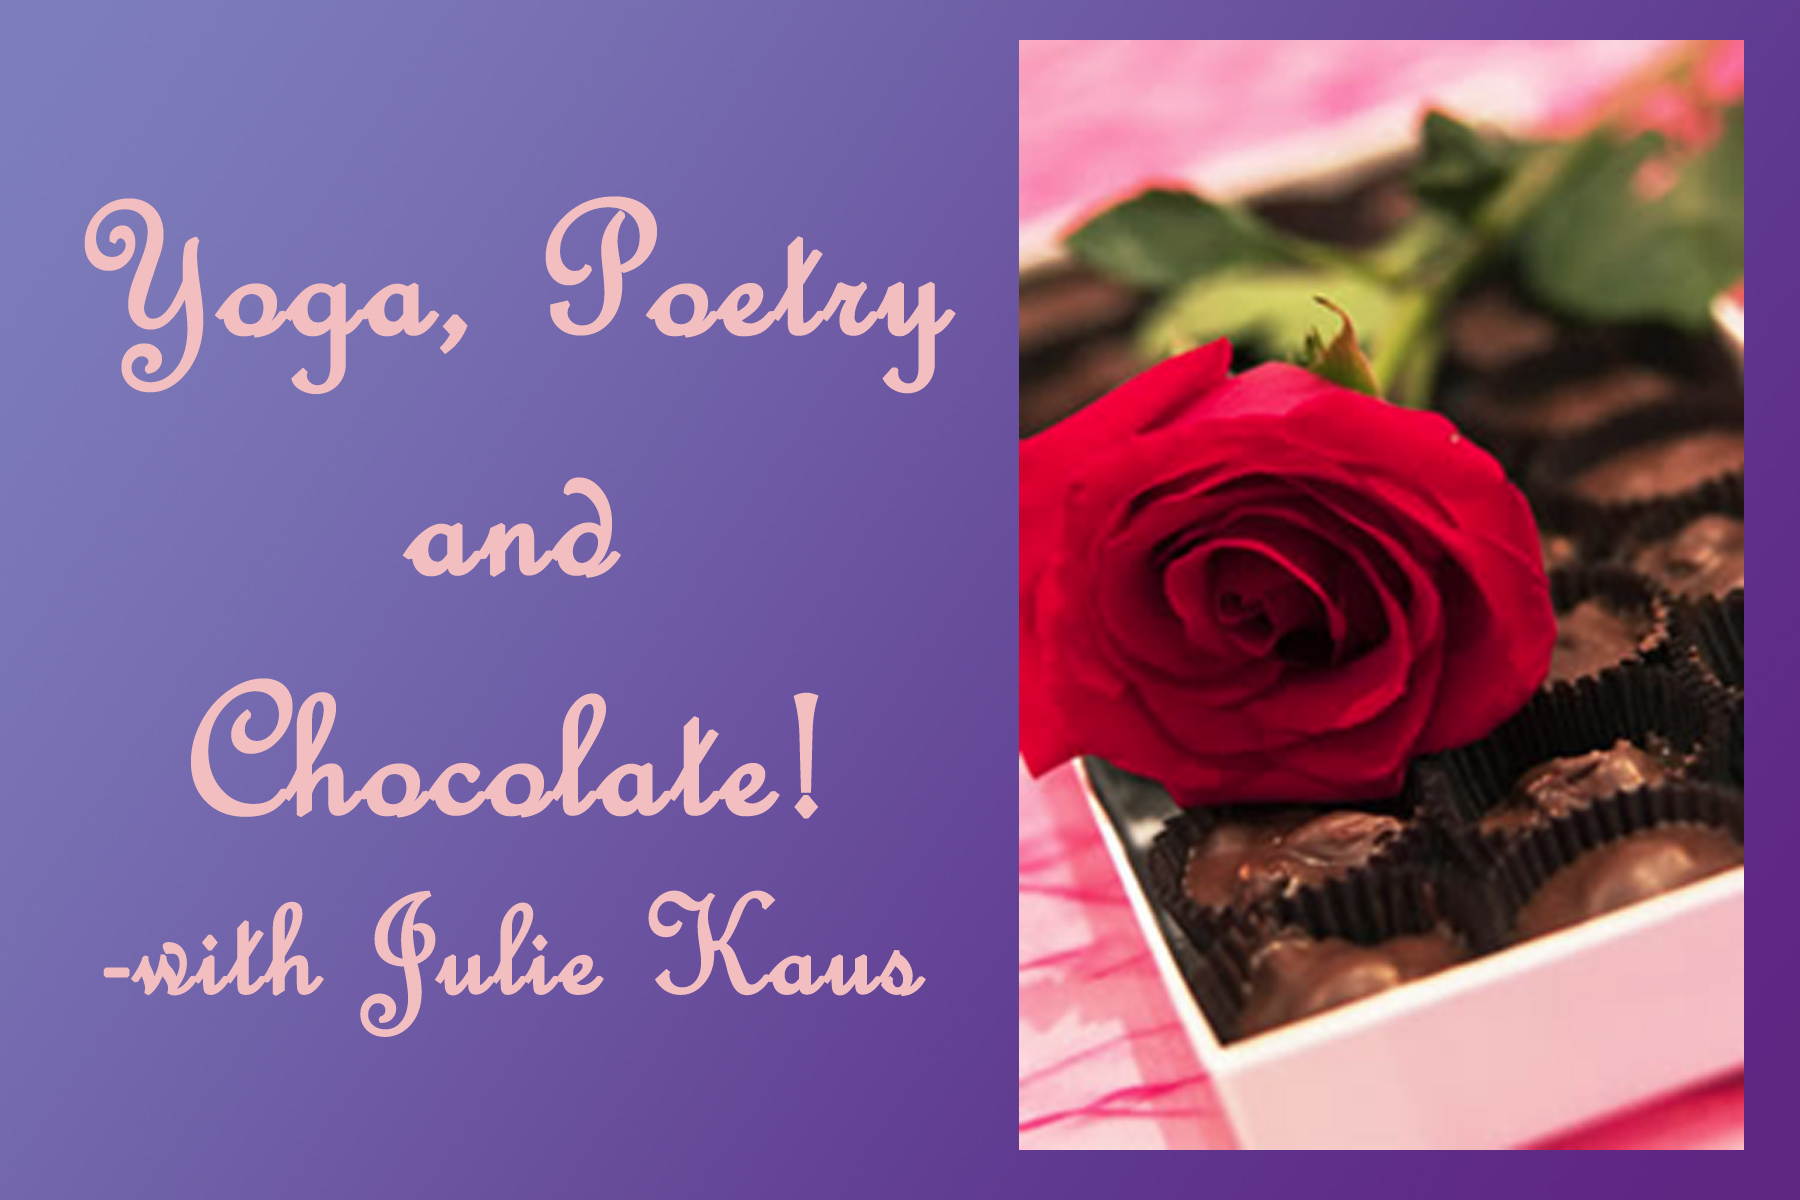 Yoga, Poetry, and Chocolate Workshop